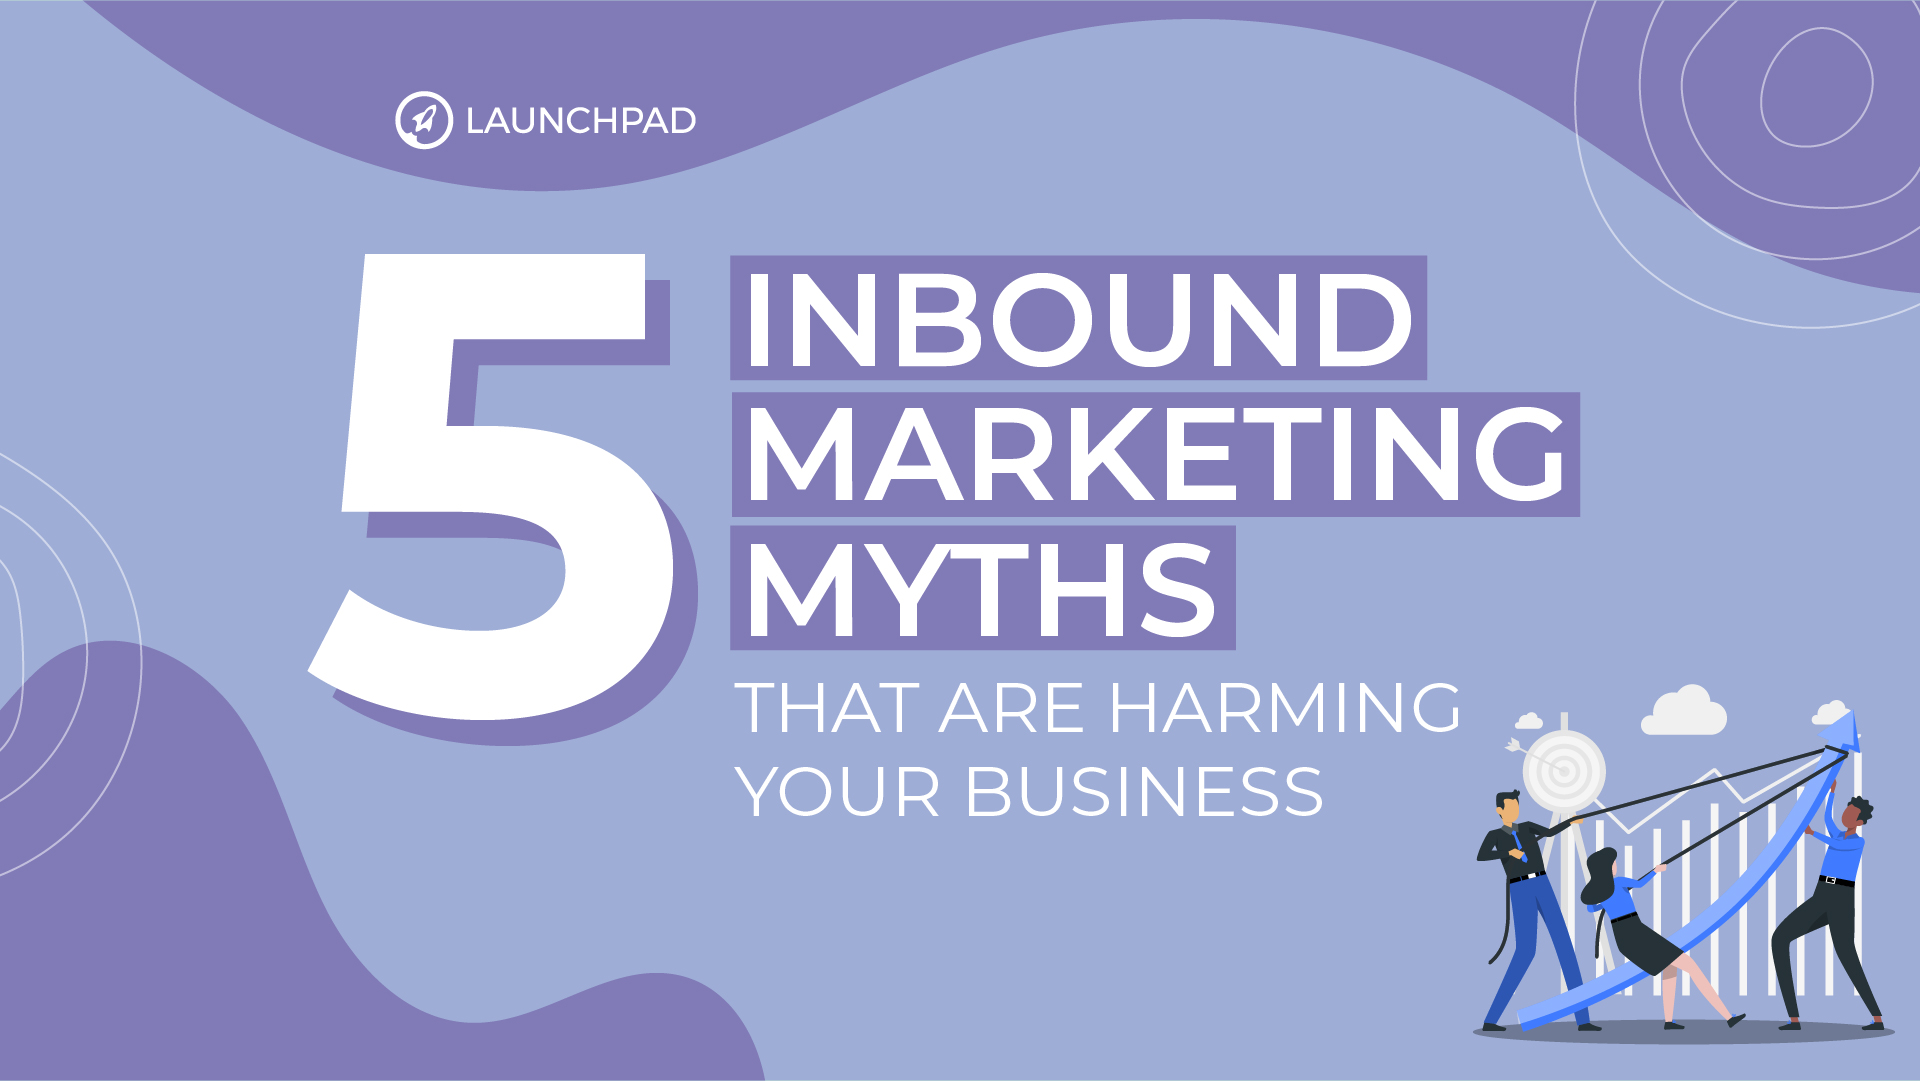 Blog[SM]-5 Inbound Marketing Myths That Are Harming Your Business-02